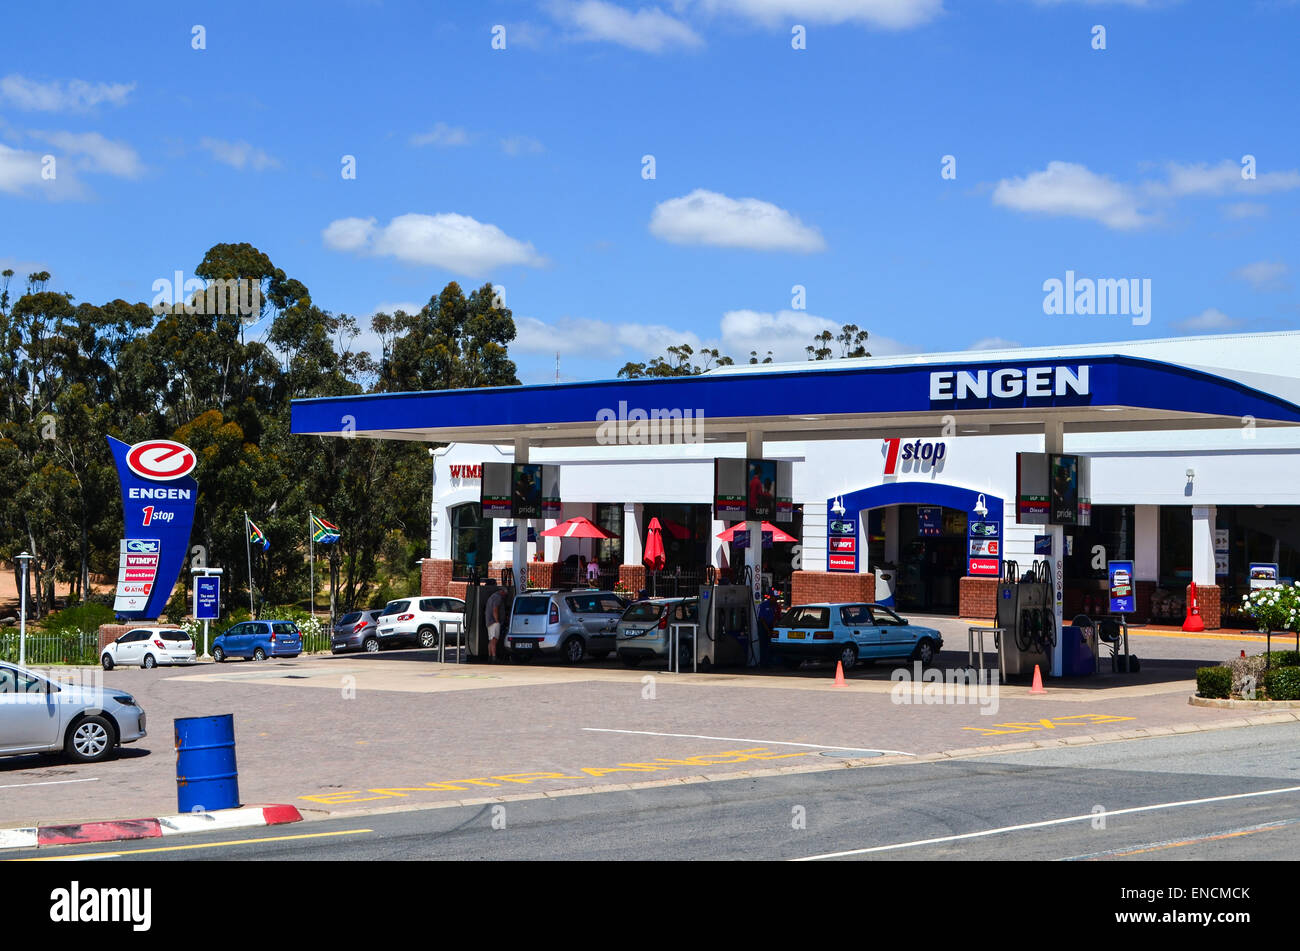 Engen petrol station in South Africa - Stock Image